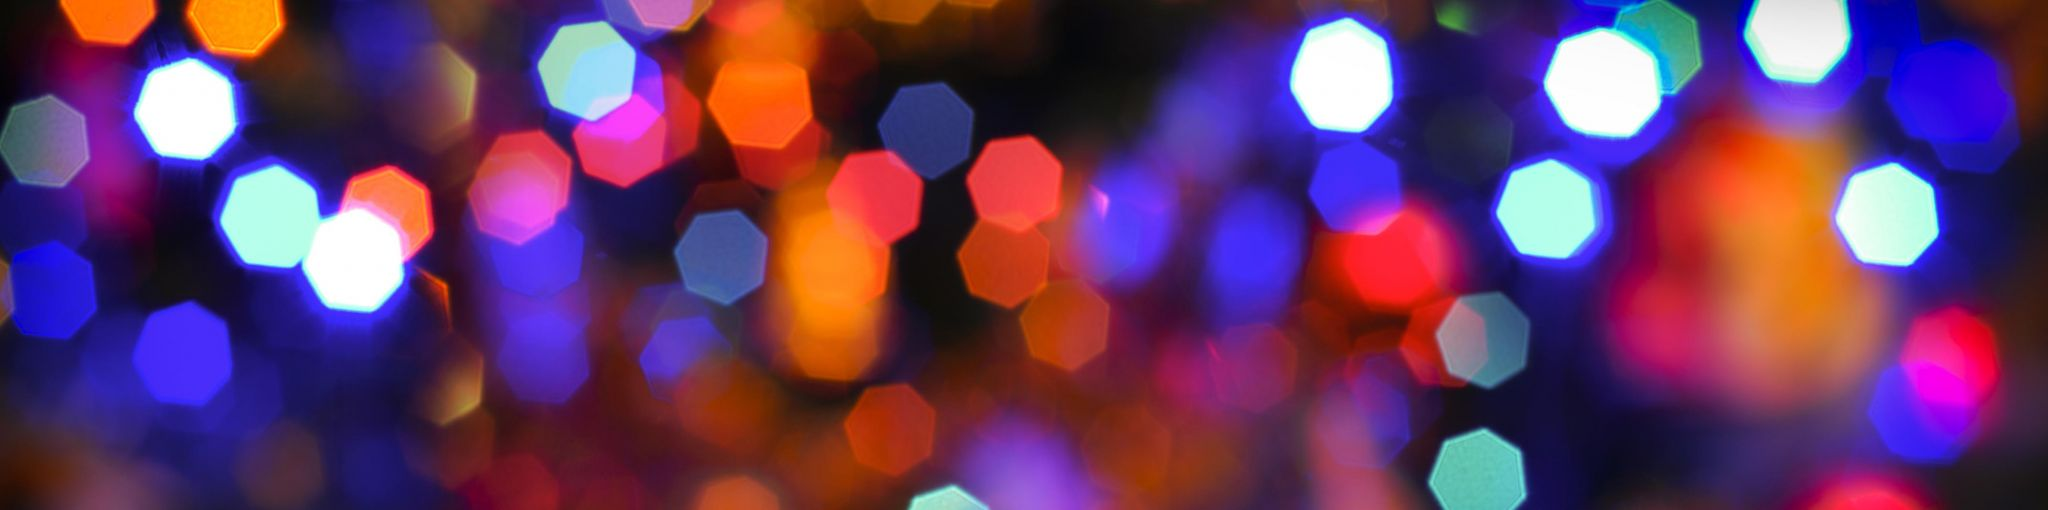 Many bokeh rainbow lights in the night